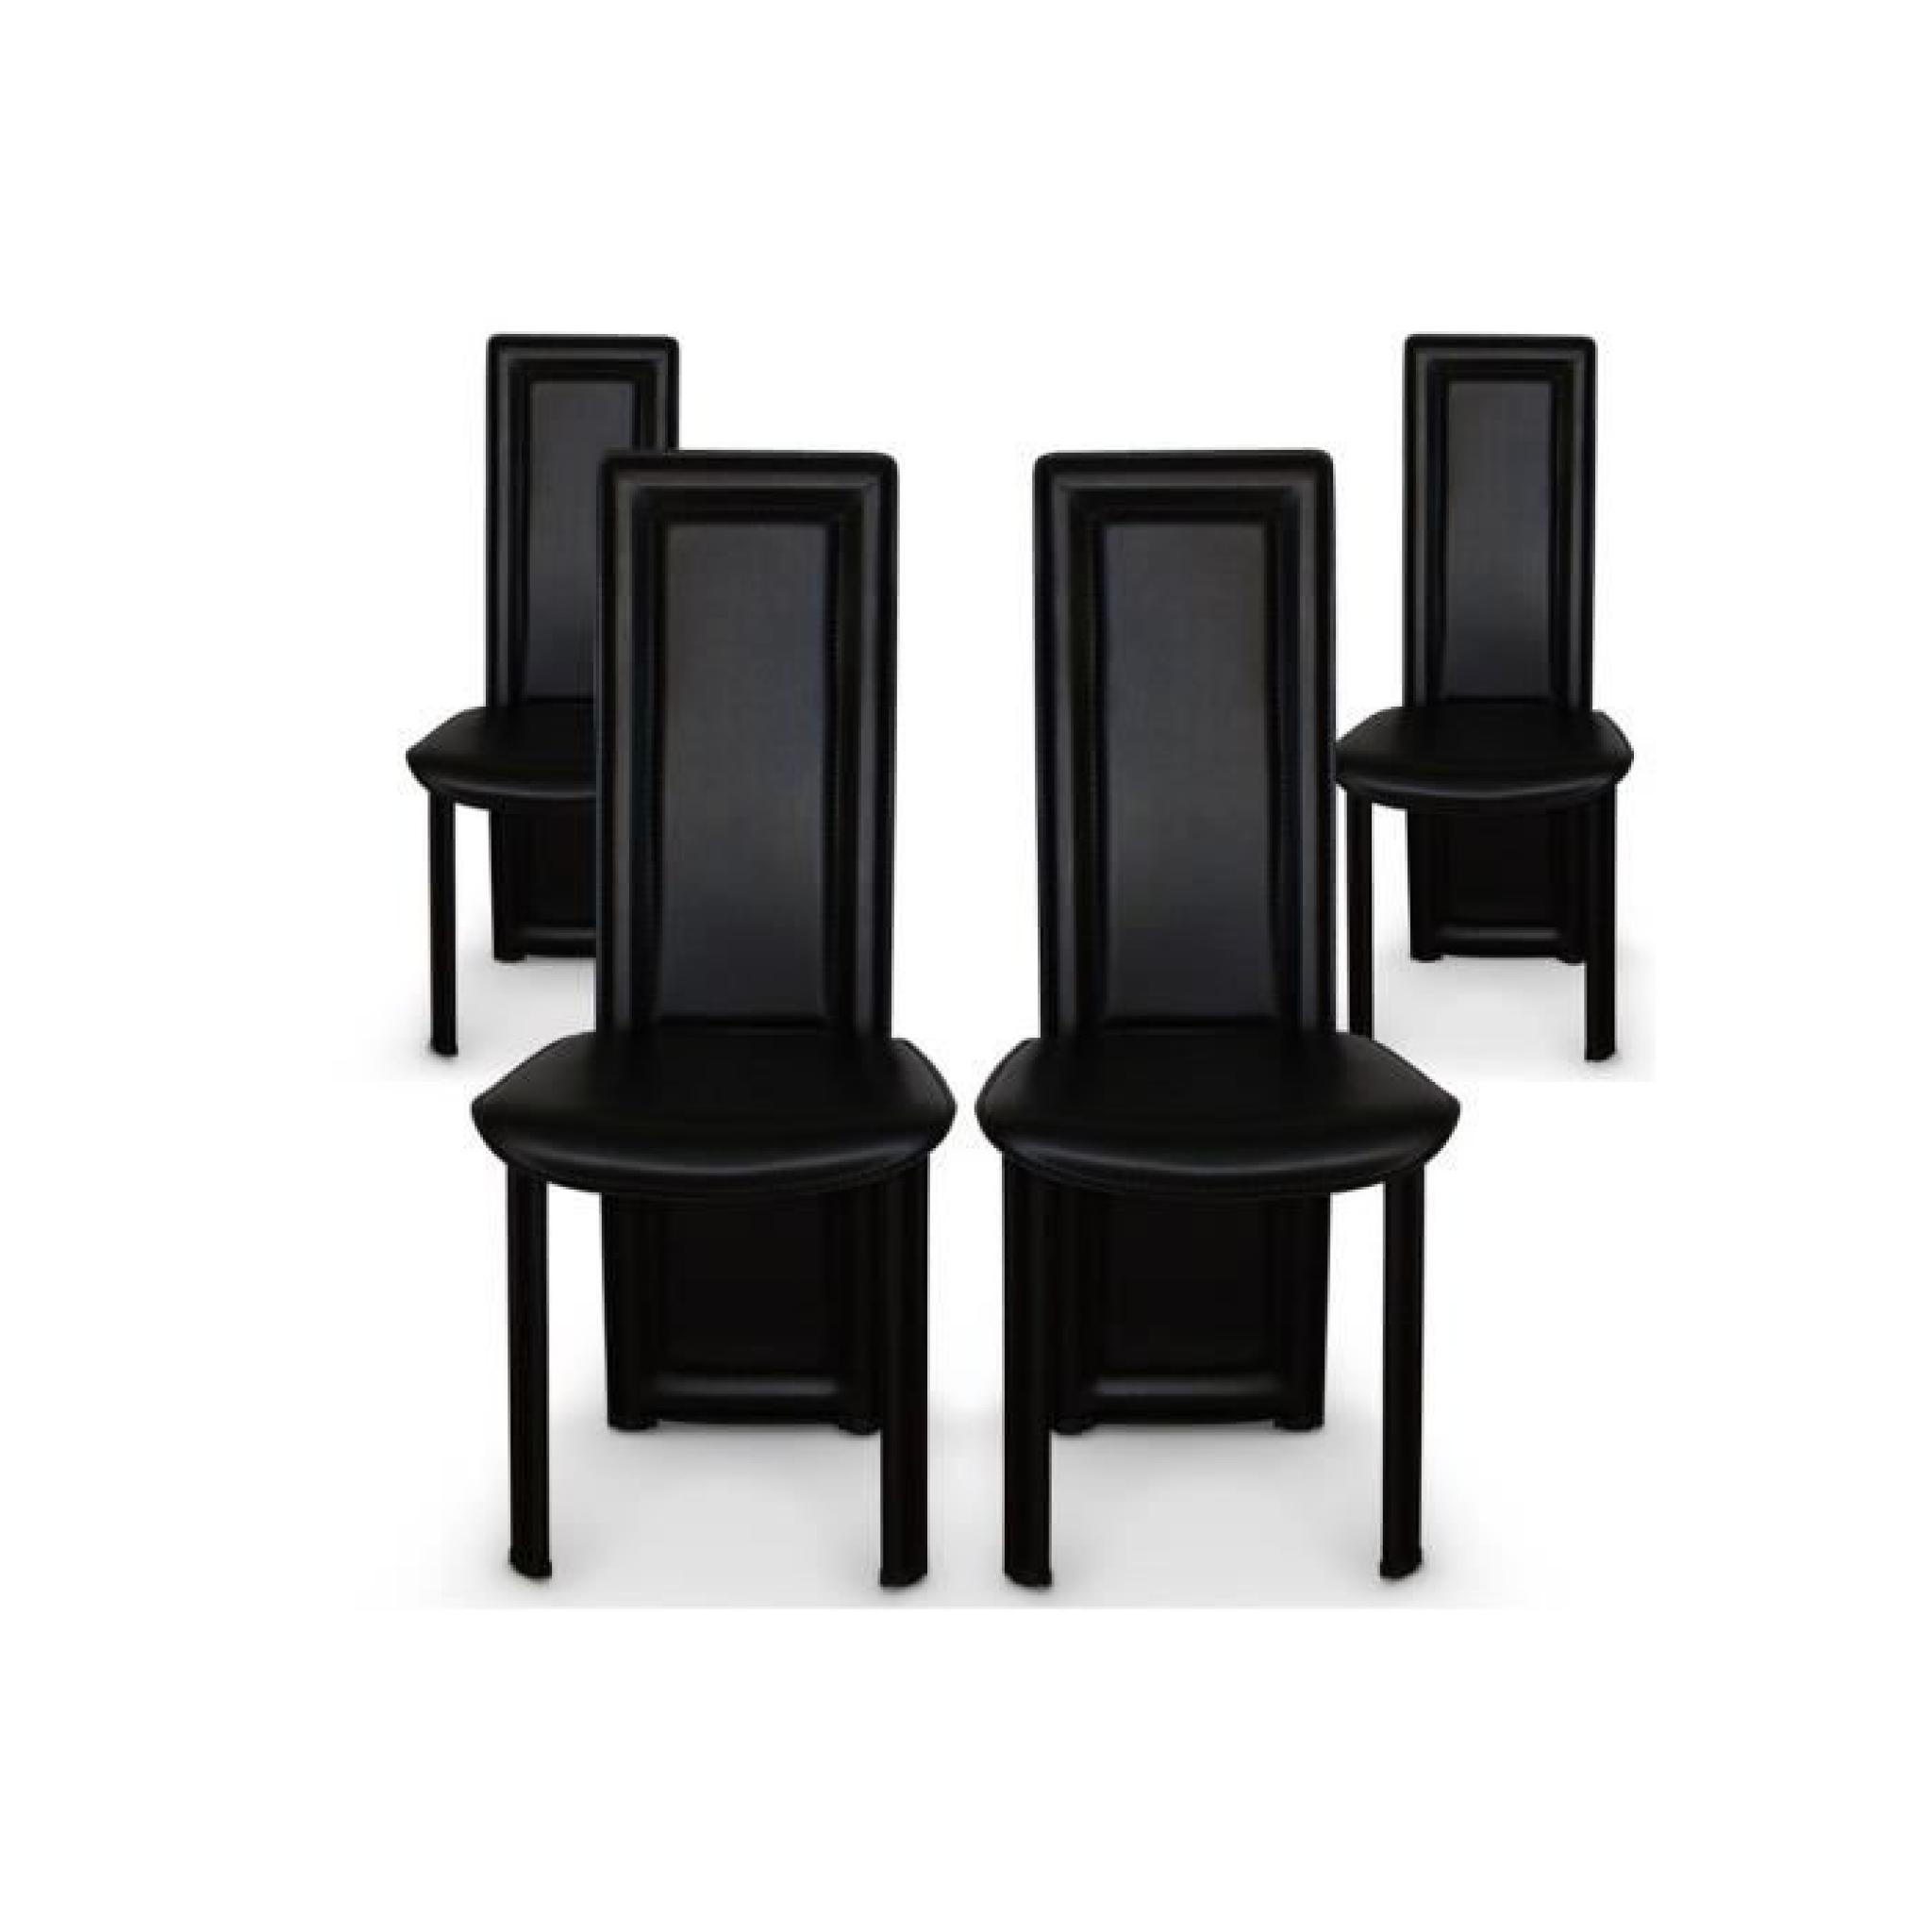 lot de 4 chaises salle a manger noires asya achat vente. Black Bedroom Furniture Sets. Home Design Ideas